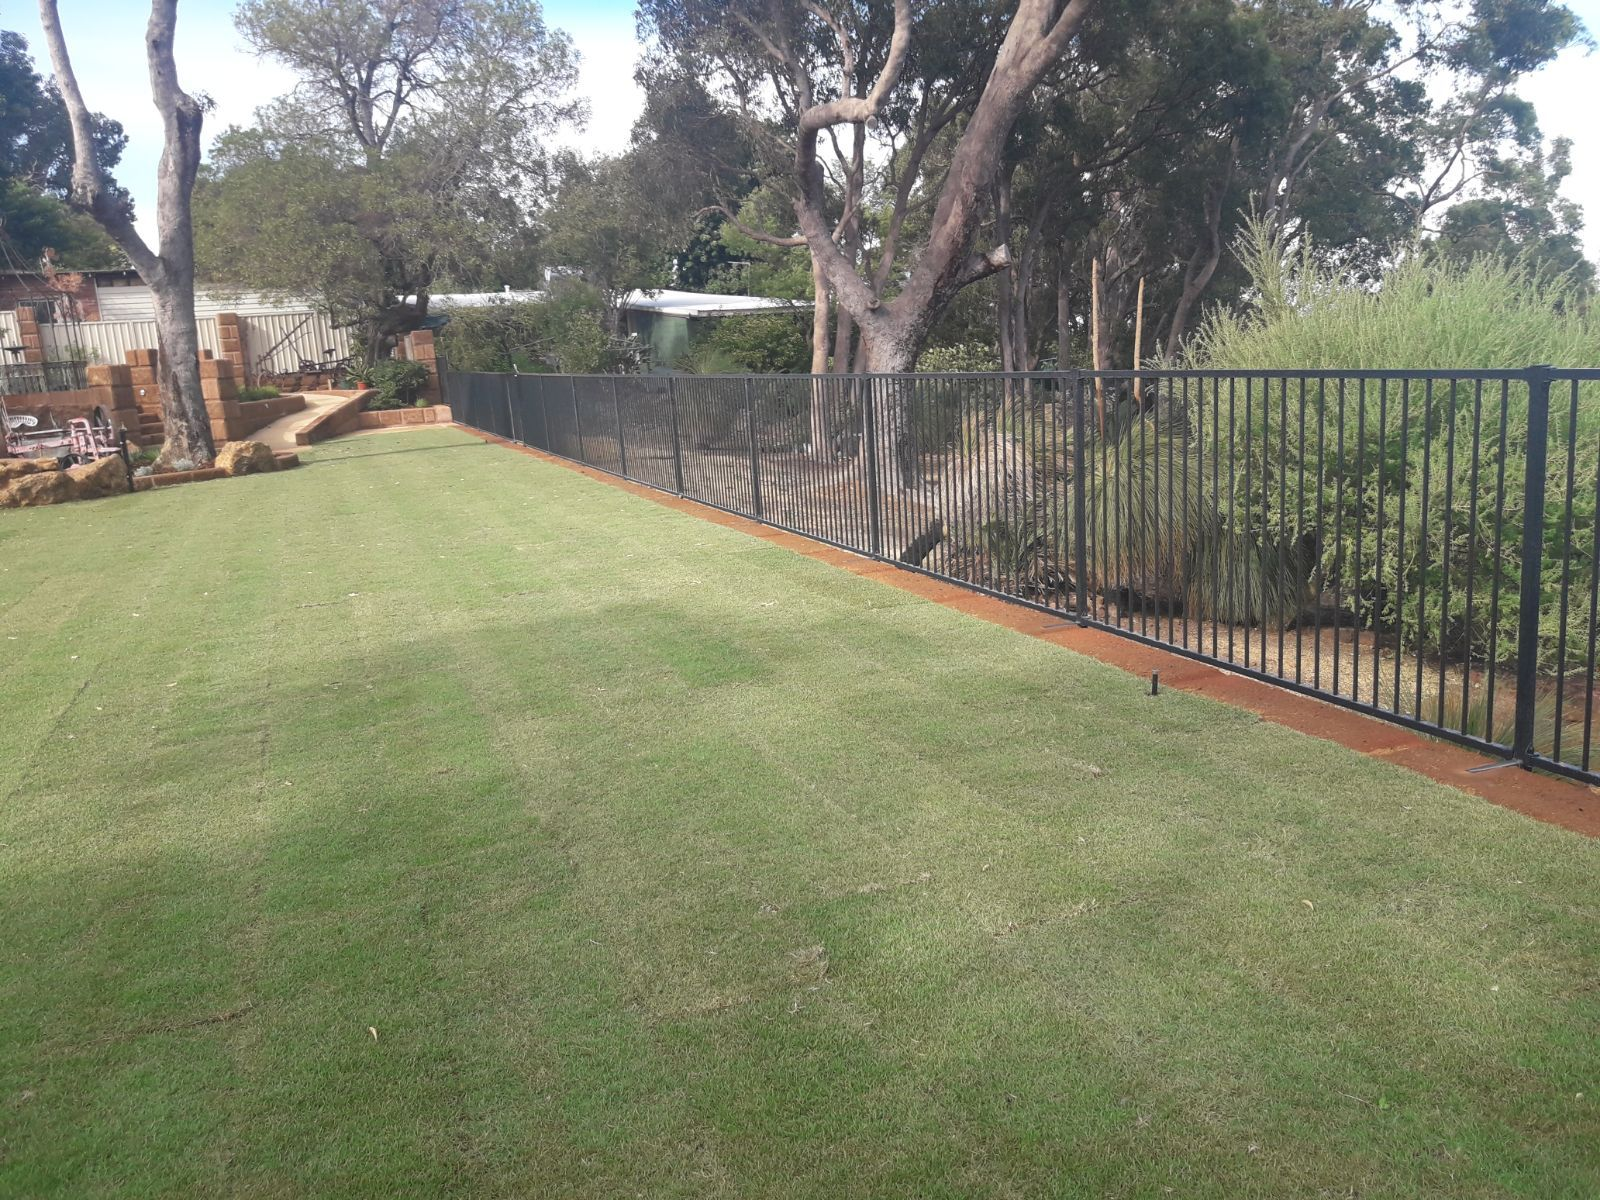 Glass Pool Fencing Perth Wa Frameless Glass Aluminum Pool Fence In 2020 Glass Pool Aluminum Pool Fence Glass Pool Fencing